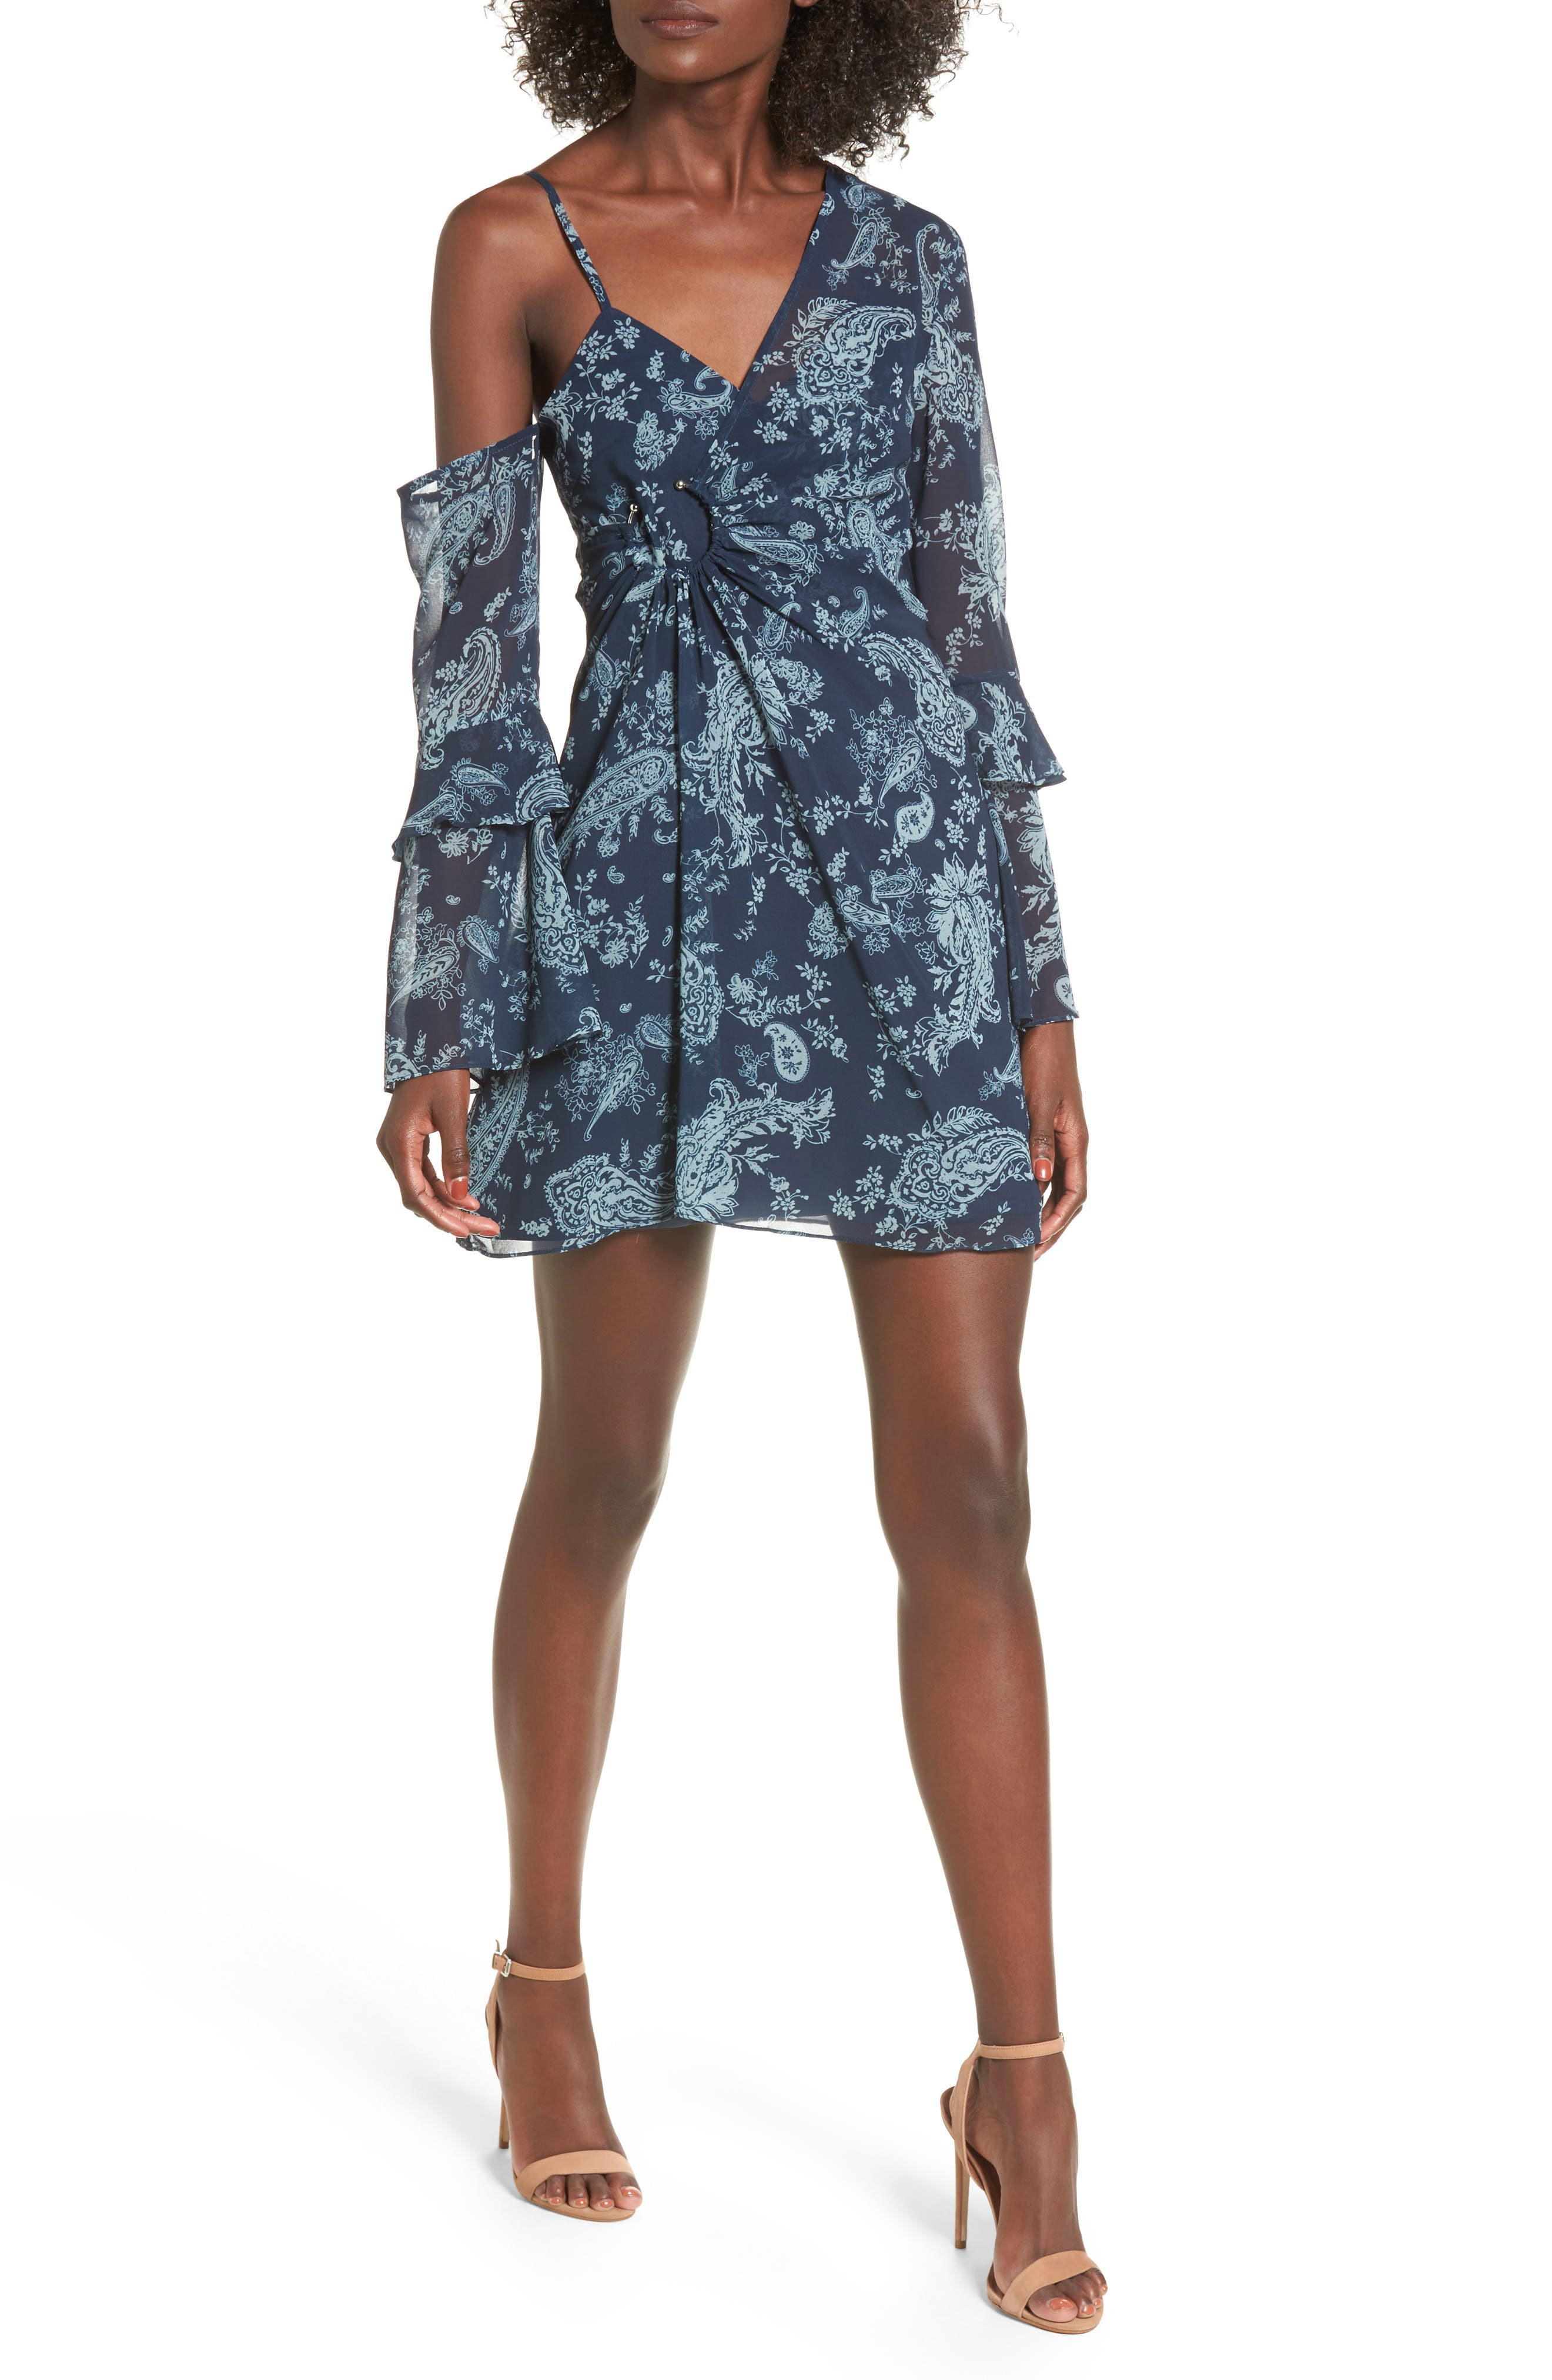 Go With It Minidress,                         Main,                         color, Navy Paisley